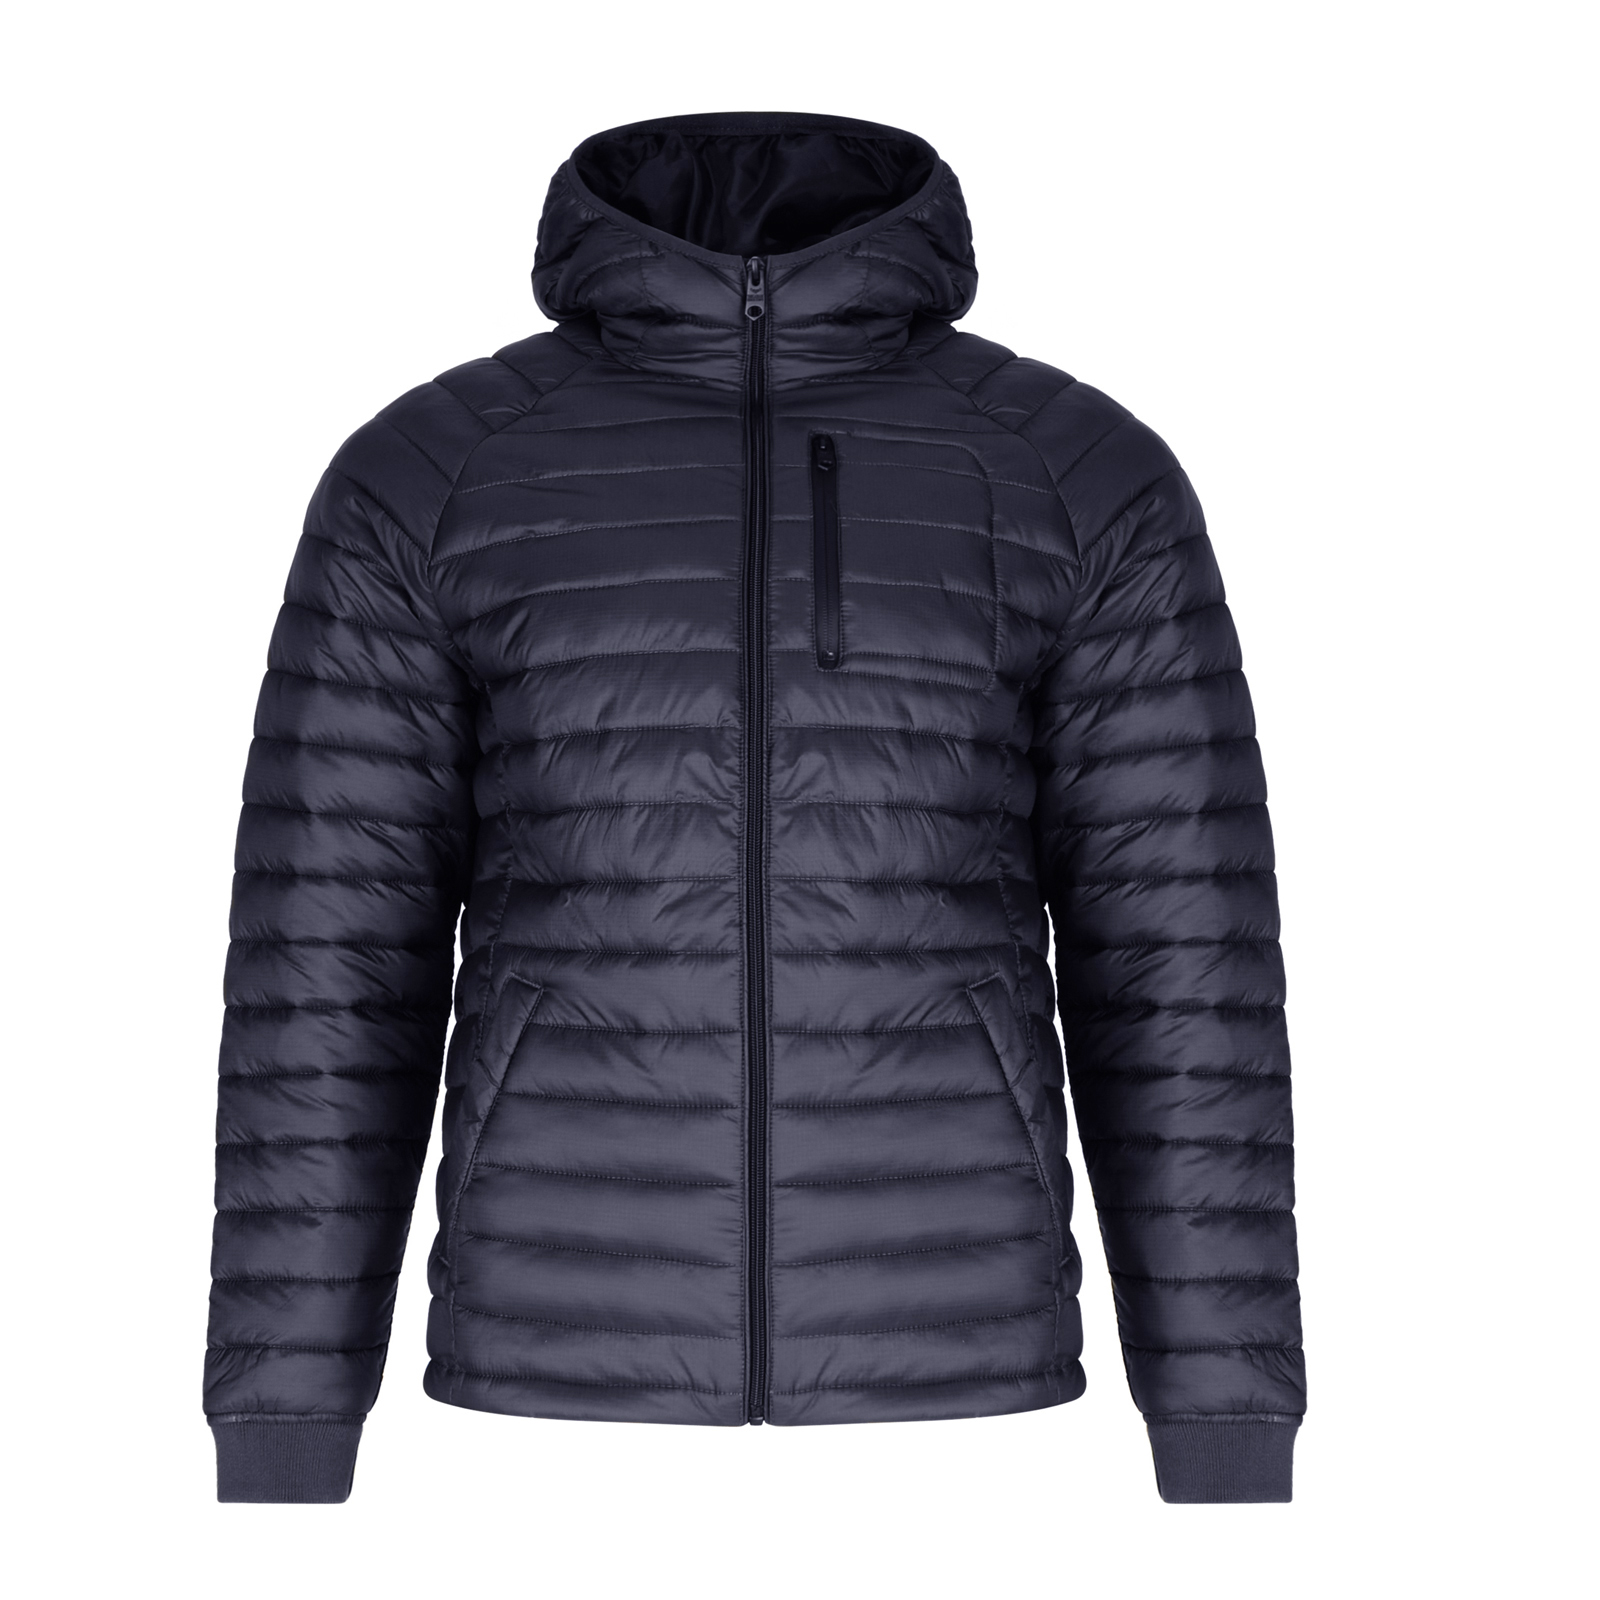 Designer Jackets & Coats for Men. A designer jacket or coat is a wardrobe essential, no questions asked. Mainline Menswear is the home of countless men's designer jackets and coats. From gilets, leather jackets, quilted coats and raincoats, our comprehensive range is all handpicked from the biggest fashion brands around the world.